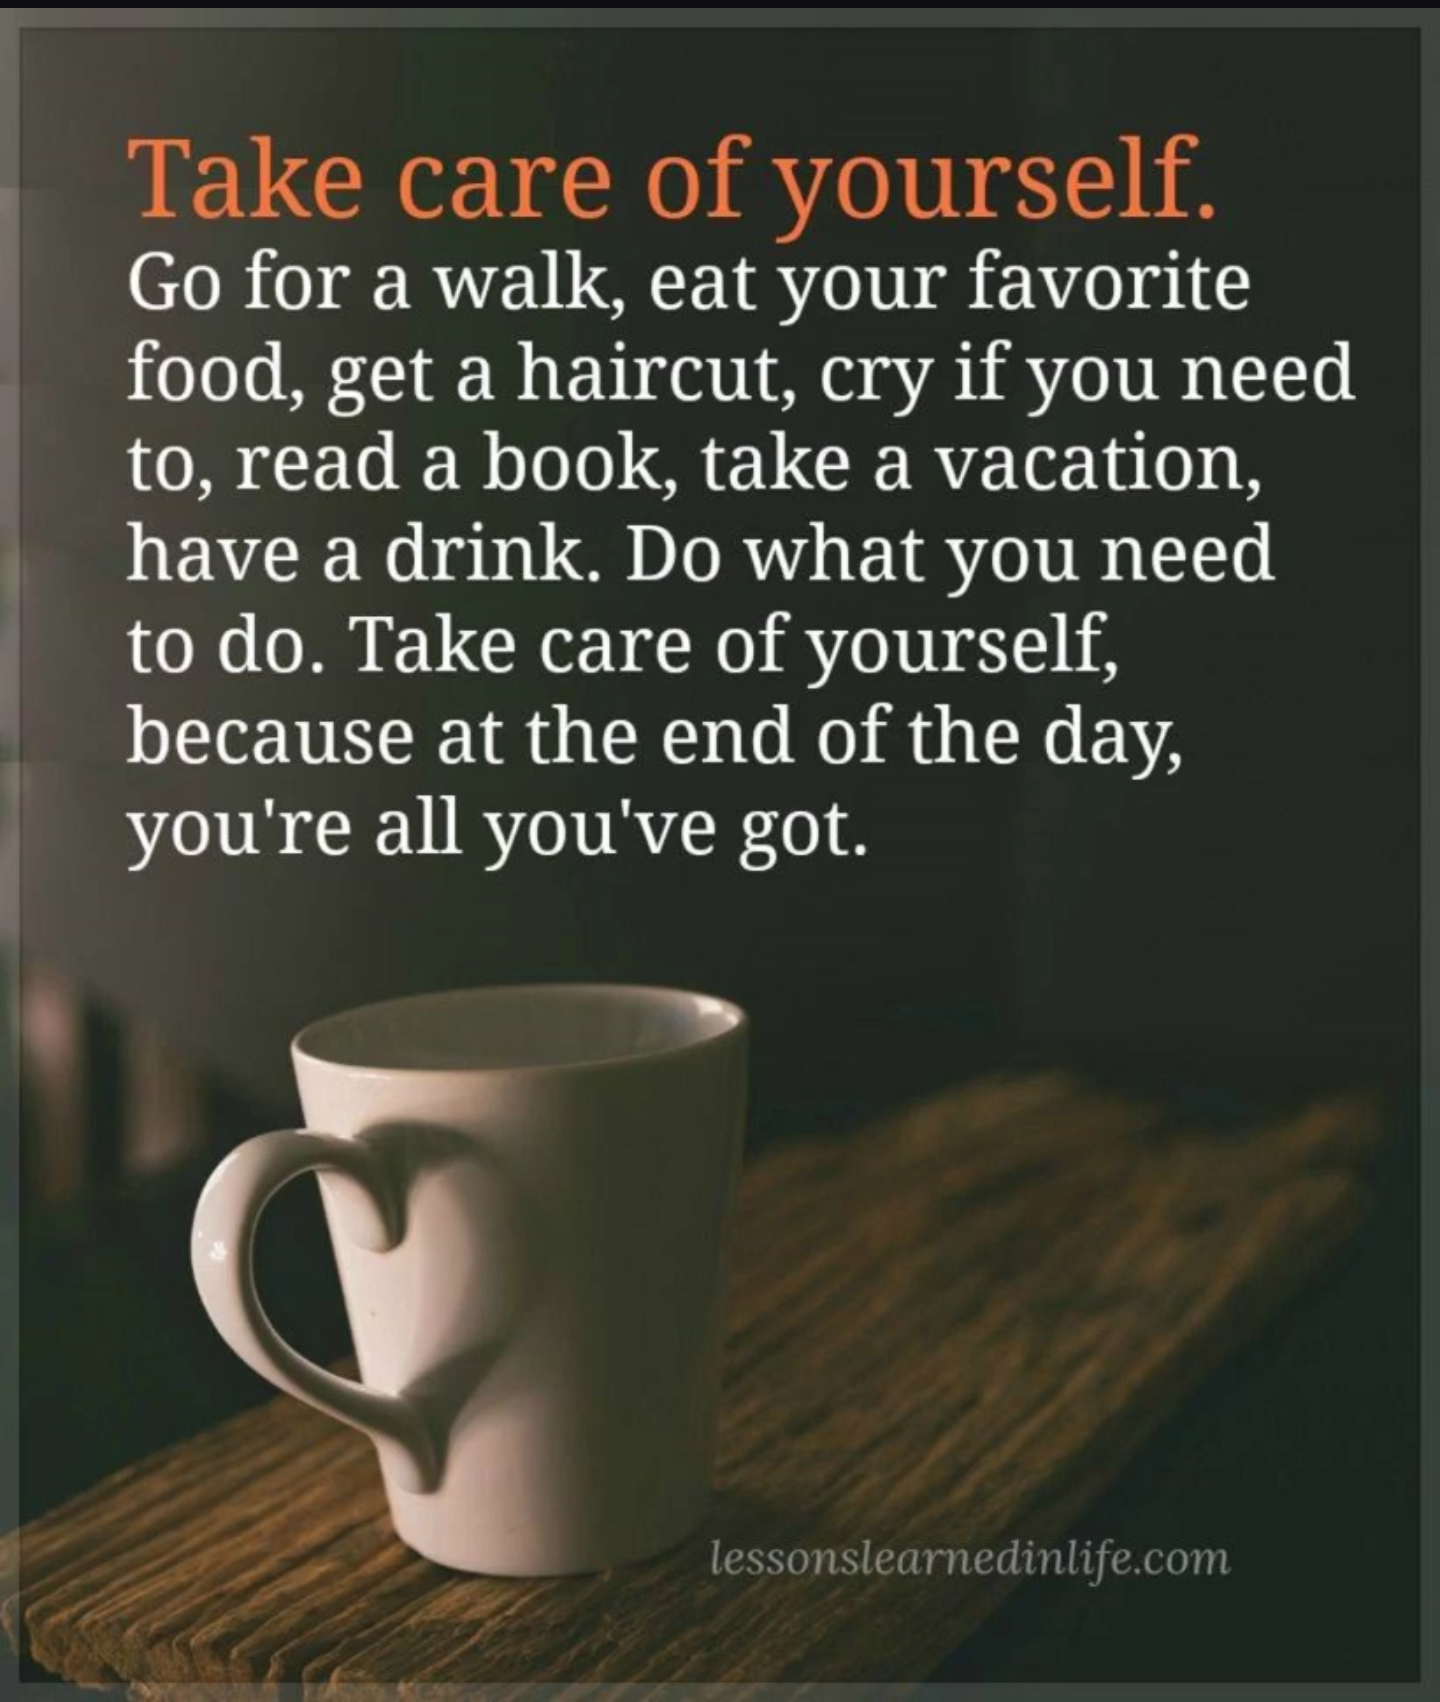 [IMAGE] Take Care of Yourself…